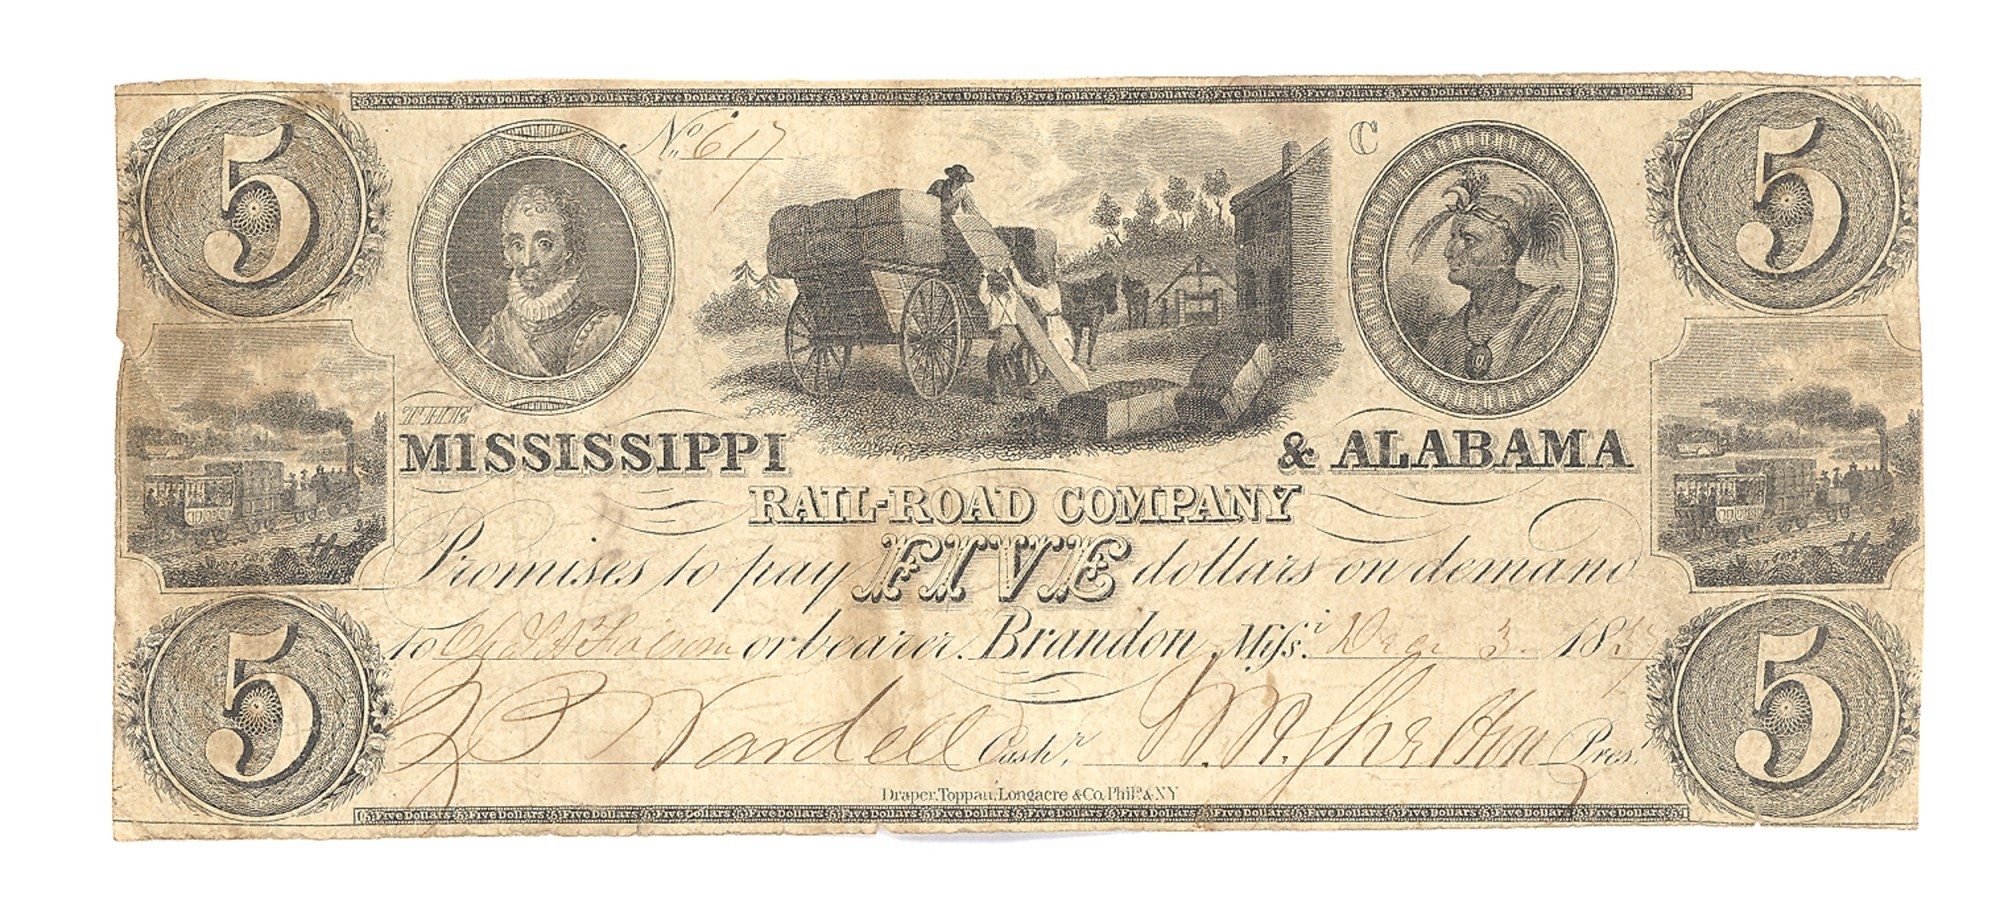 MISSISSIPPI & ALABAMA RAILROAD COMPANY, MISSISSIPPI, $5 NOTE